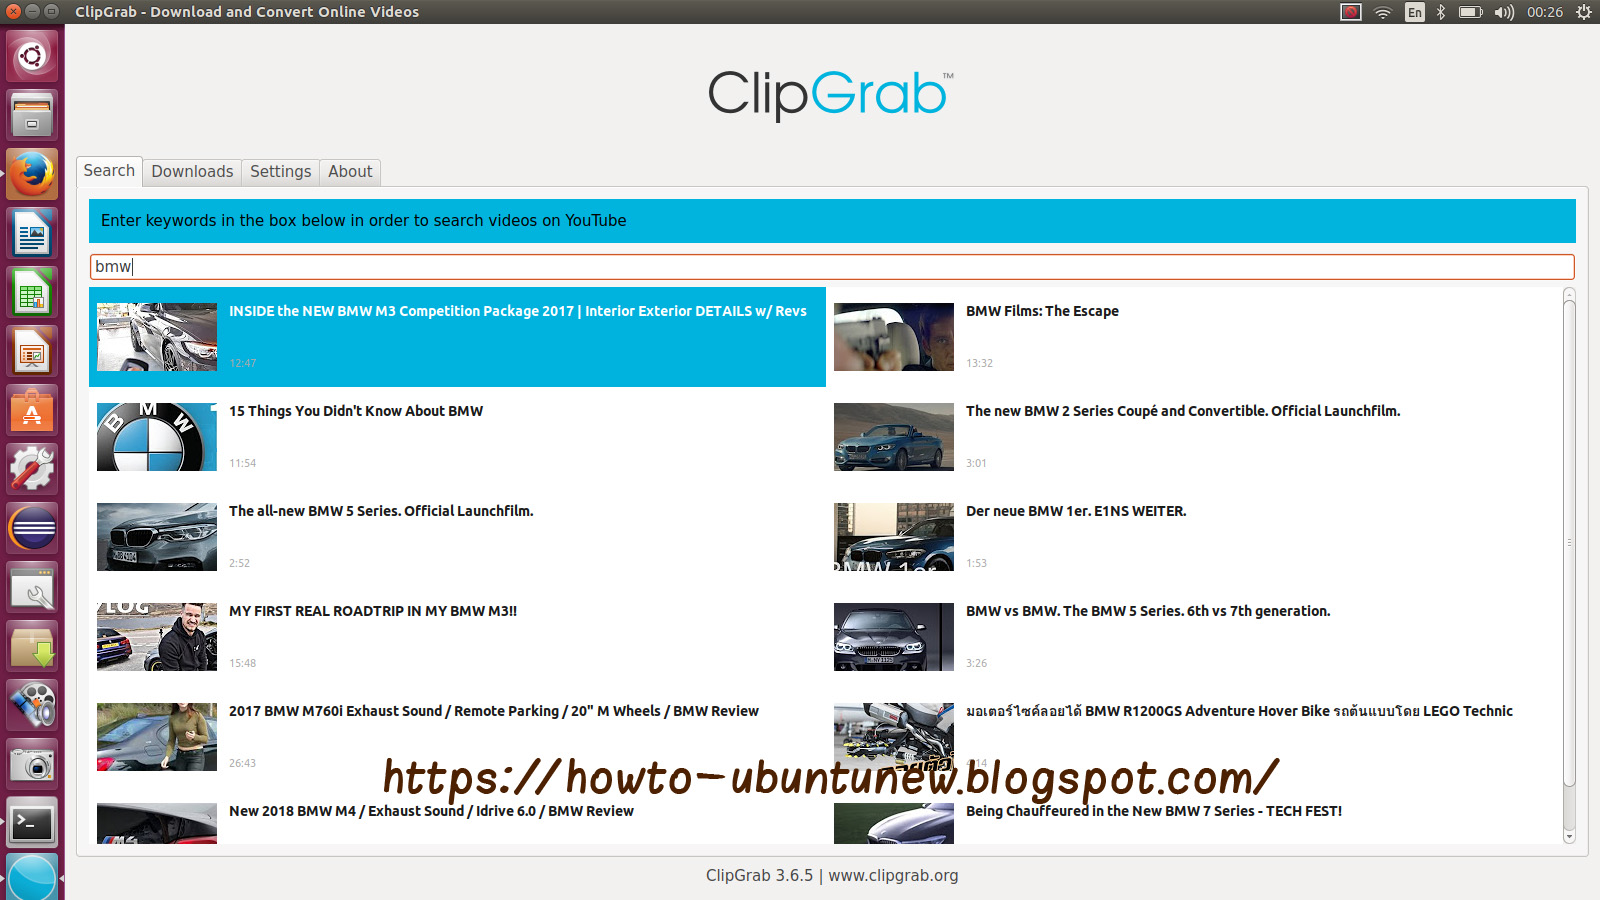 How to install program on Ubuntu: How to Install ClipGrab 3 6 5 on